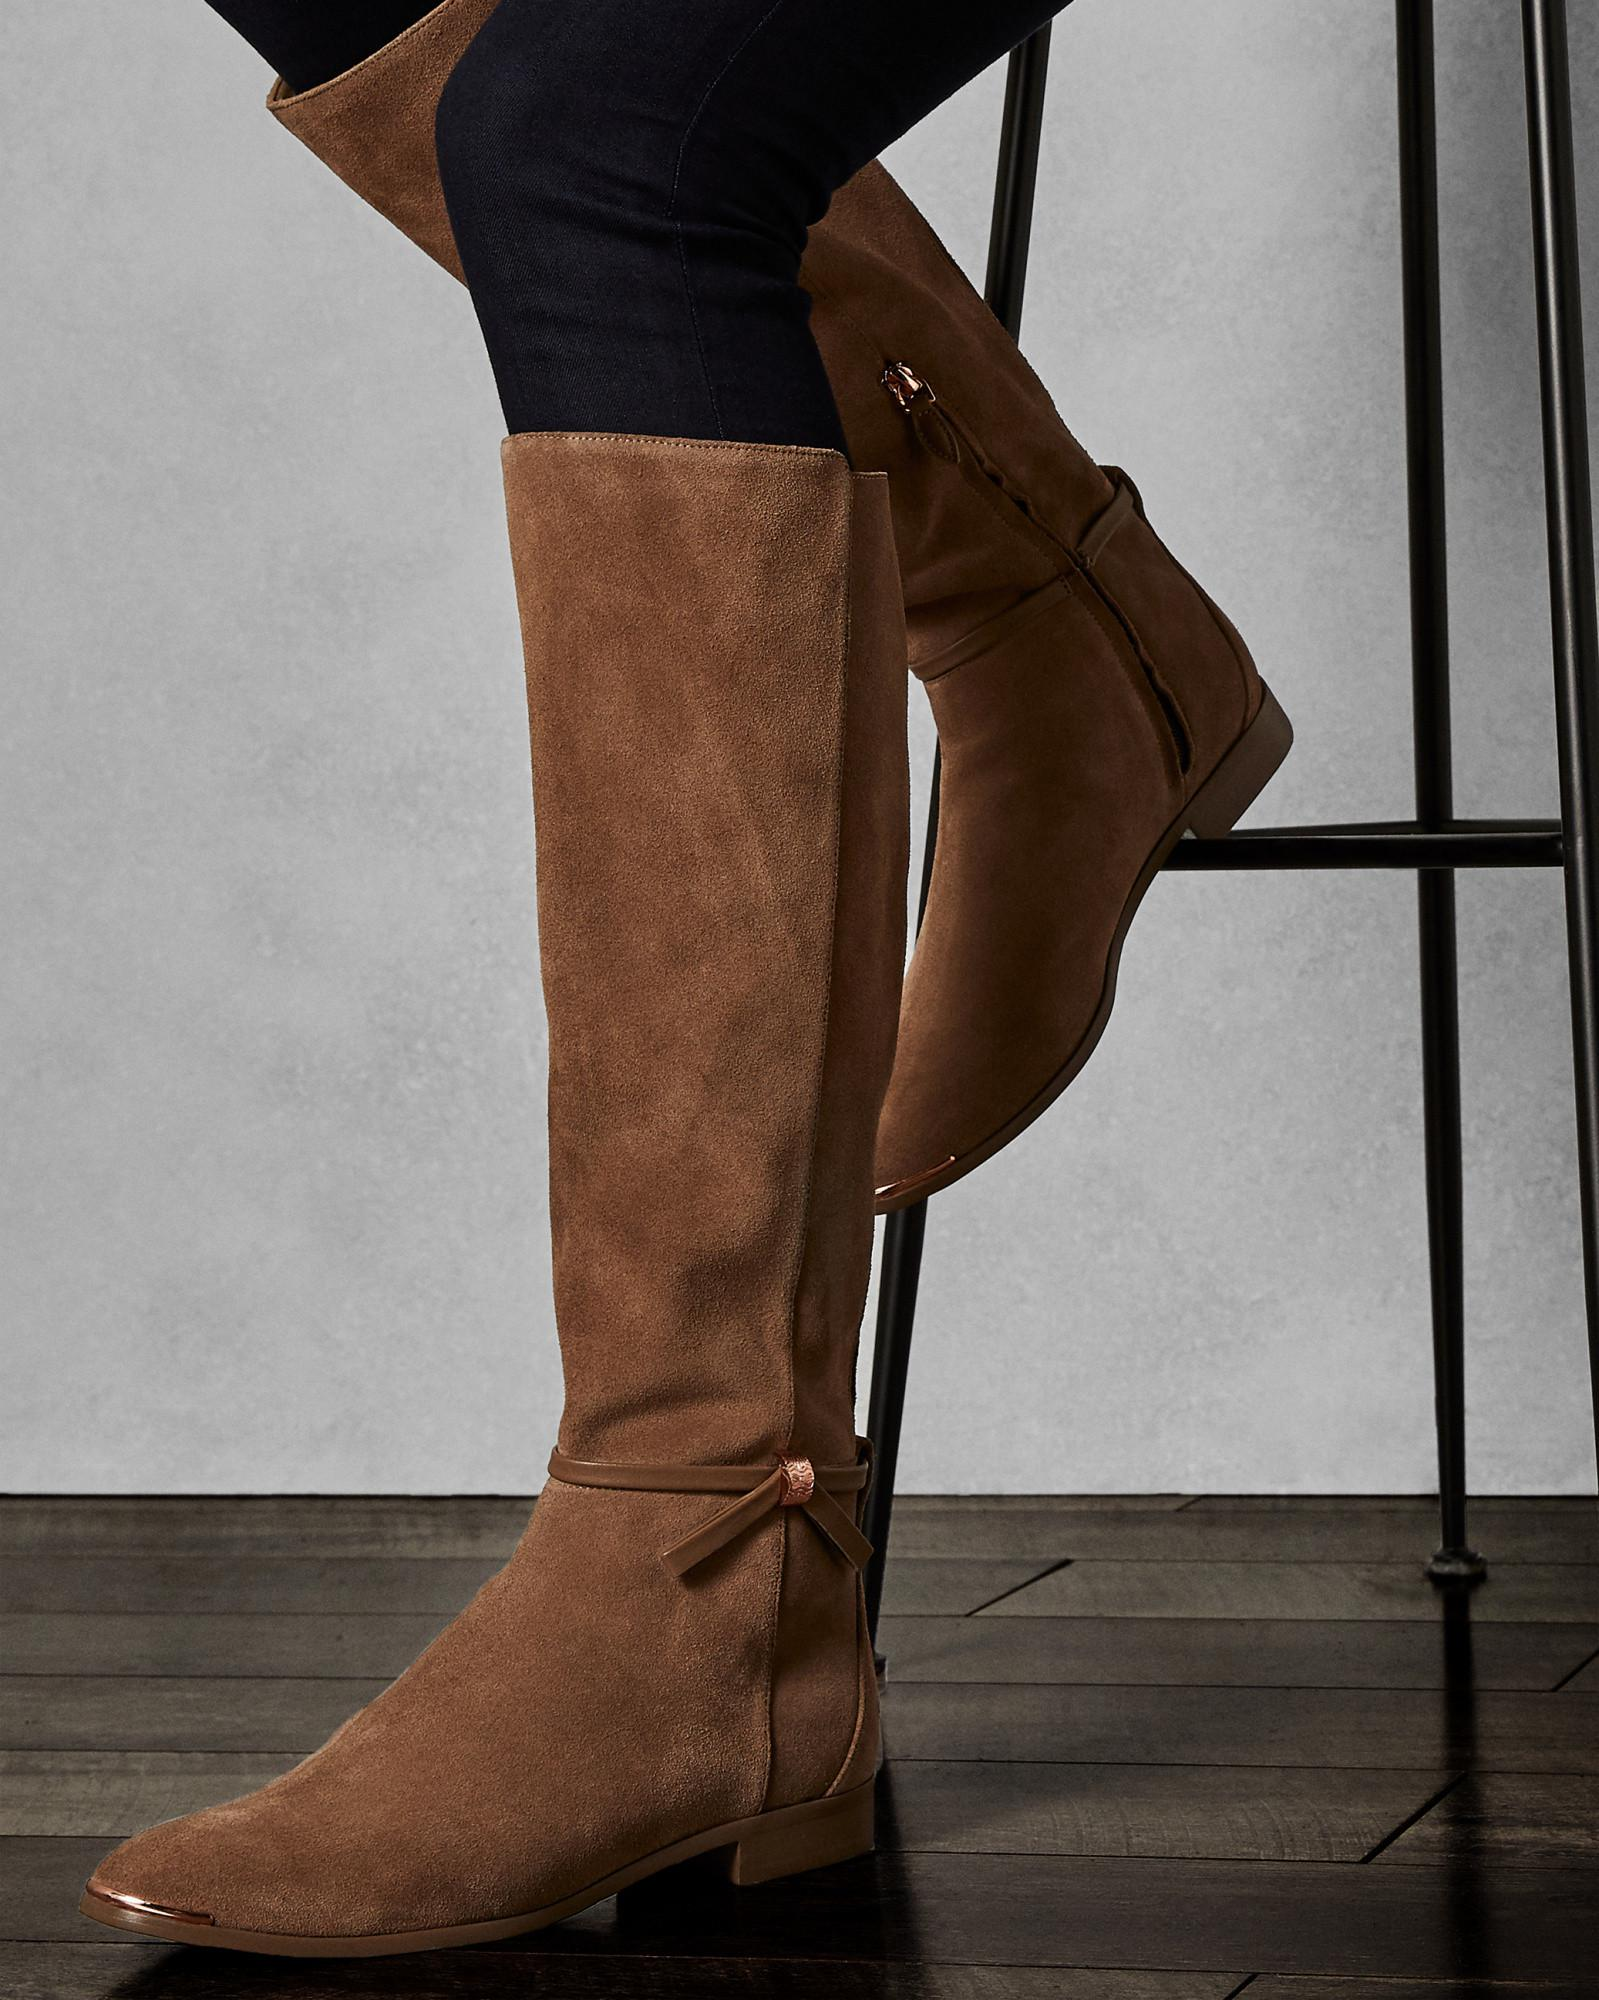 2a75005a2d1ac Ted Baker Knee High Suede Boots in Brown - Lyst